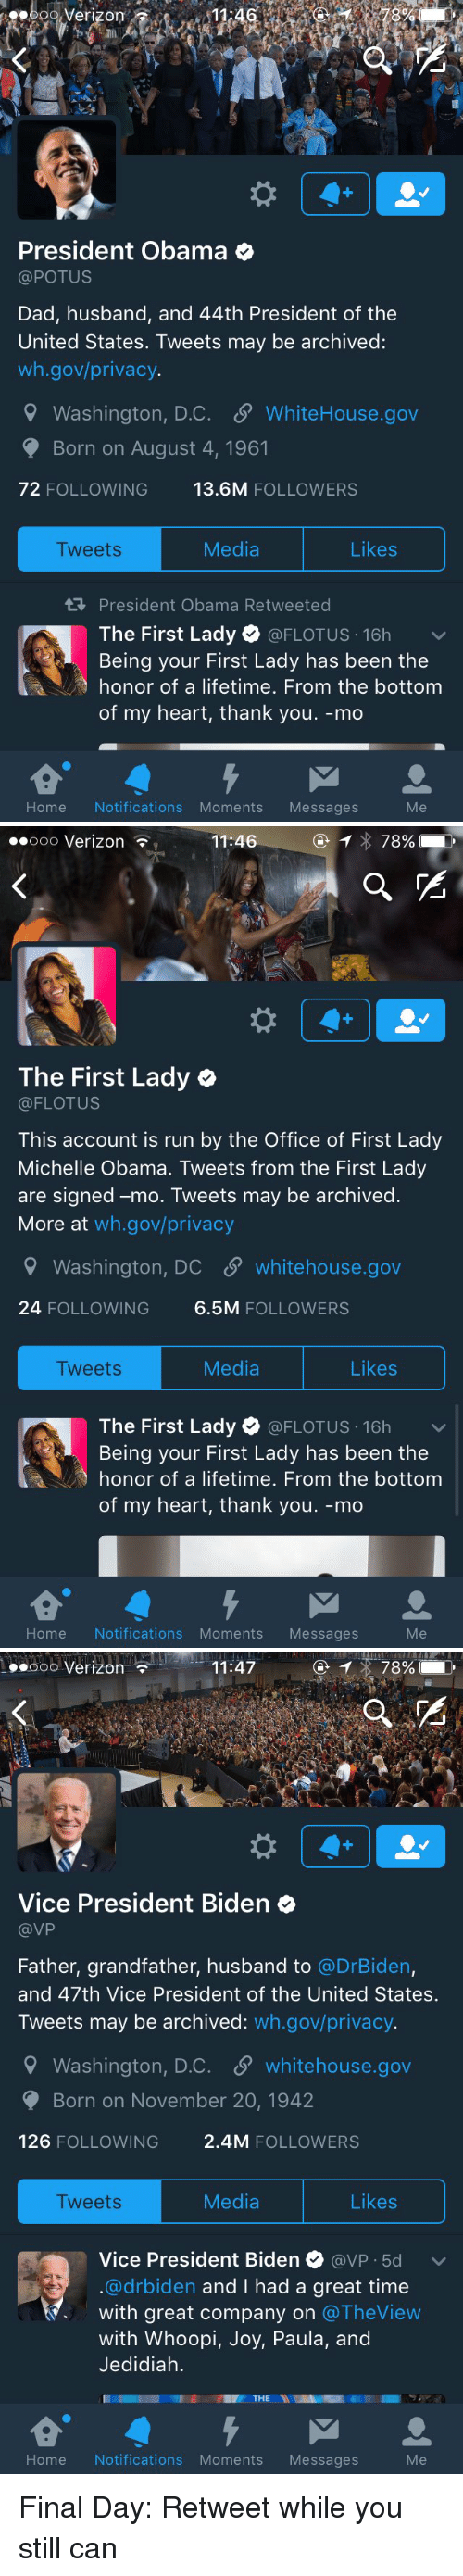 Whoopy: Verizon  President Obama  @POTUS  Dad, husband, and 44th President of the  United States. Tweets may be archived:  wh.gov/privacy.  9 Washington, D.C. SP WhiteHouse.gov  Born on August 4, 1961  72 FOLLOWING  13.6M  FOLLOWERS  Likes  Media  Tweets  President Obama Retweeted  The First Lady  @FLOTUS 16h  v  Being your First Lady has been the  honor of a lifetime. From the bottom  of my heart, thank you. -mo  Home Notifications Moments Messages   Ooo Verizon  11:46  78%  The First Lady  (a FLOTUS  This account is run by the Office of First Lady  Michelle Obama. Tweets from the First Lady  are signed -mo. Tweets may be archived  More at  wh.gov/privacy  Washington, DC SP whitehouse.gov  24 FOLLOWING  6.5M  FOLLOWERS  Media  Likes  Tweets  The First Lady  (a FLOTUS 16h  v  Being your First Lady has been the  honor of a lifetime. From the bottom  of my heart, thank you. -mo  Home Notifications Moments  Messages   11:47  78%  Ooo Verizon  Vice President Biden  VP  Father, grandfather, husband to  @DrBiden,  and 47th Vice President of the United States.  Tweets may be archived  wh.gov/privacy.  9 Washington, D.C. S whitehouse.gov  Born on November 20, 1942  126  FOLLOWING  2.4M FOLLOWERS  Media  Likes  Tweets  Vice President Biden  avP 5d v  @drbiden and I had a great time  with great company on  The View  with Whoopi  Joy, Paula, and  Jedidiah.  THE  NI  Home Notifications Moments Messages Final Day: Retweet while you still can